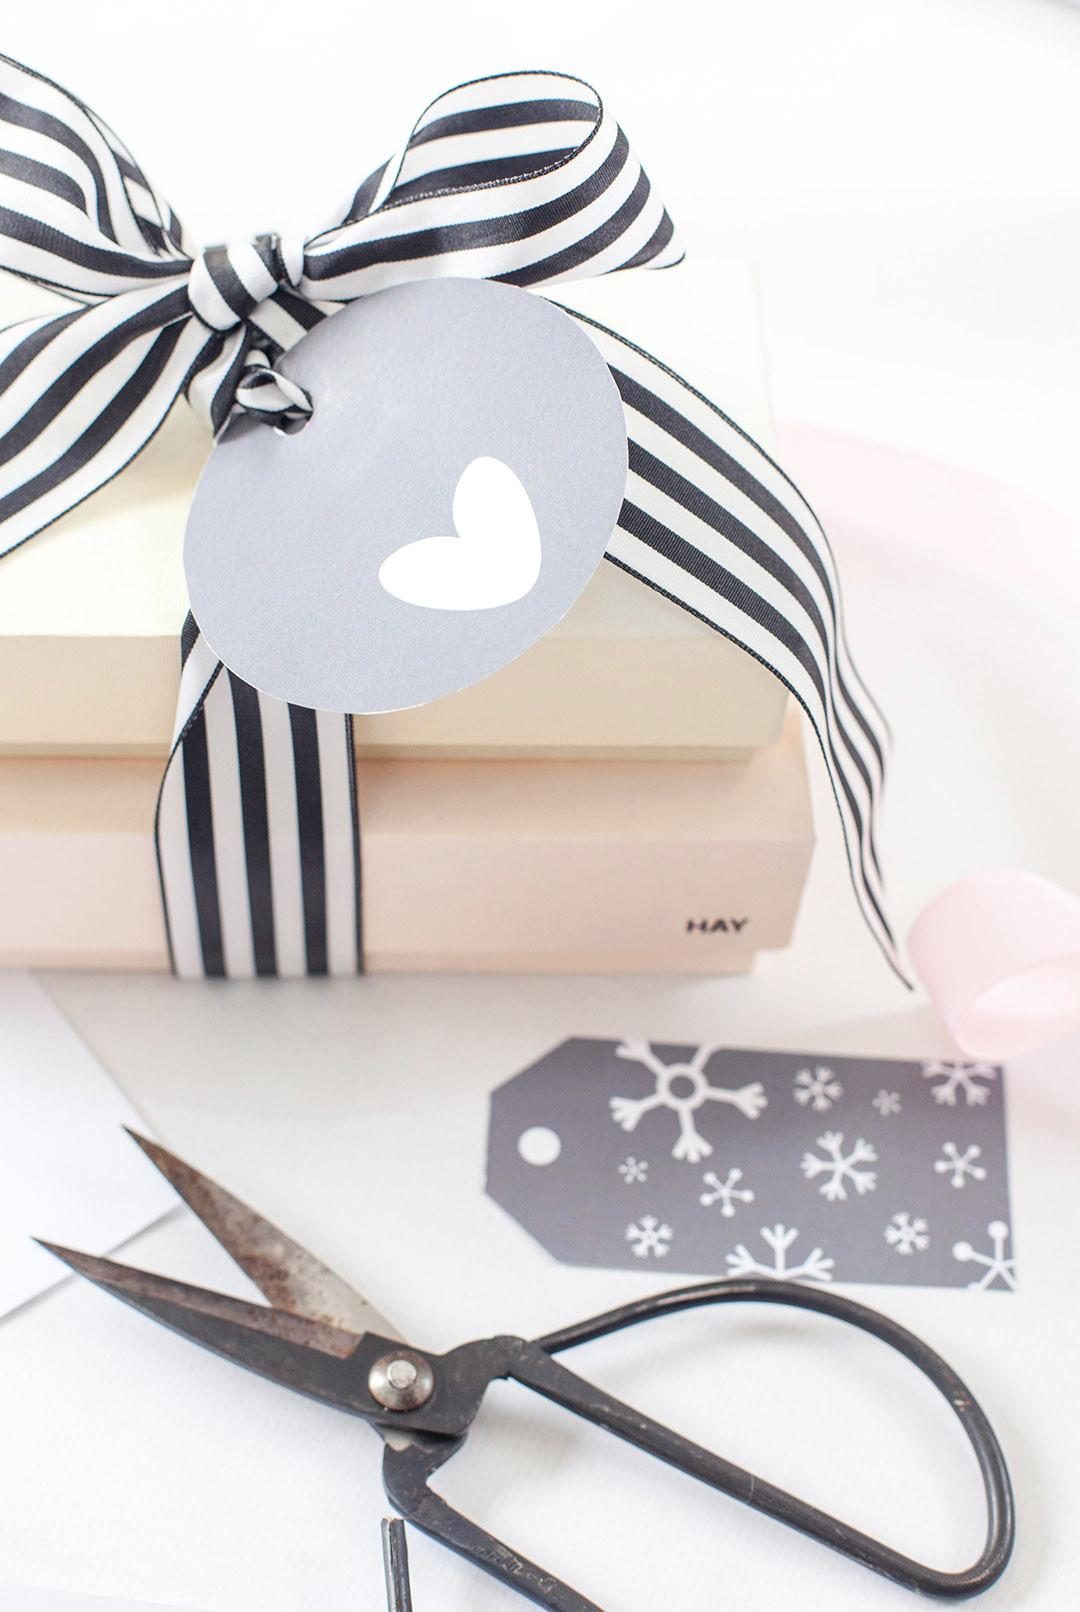 Diy Printable Christmas Gift Urban Quarters